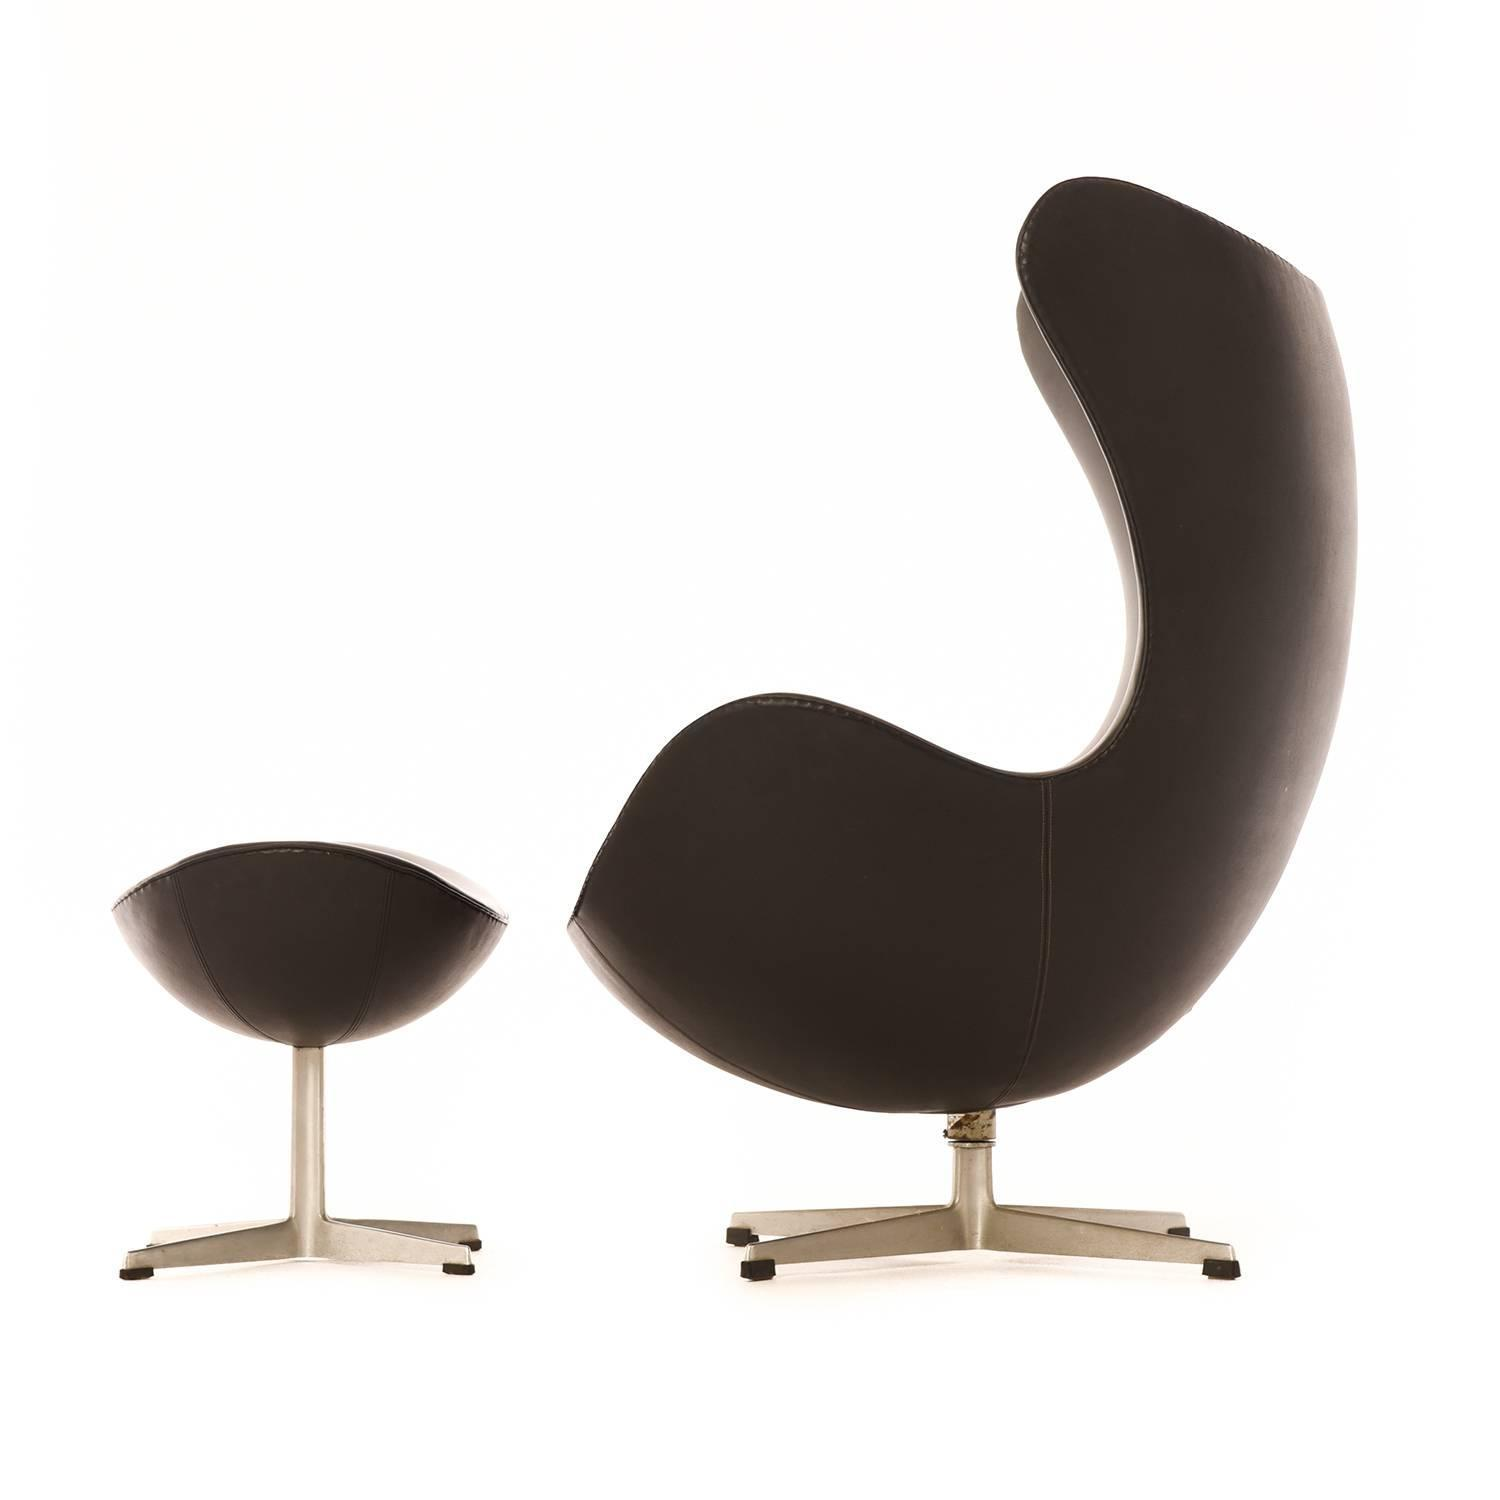 Danish Modern Egg Chair With Ottoman For Sale At 1stdibs